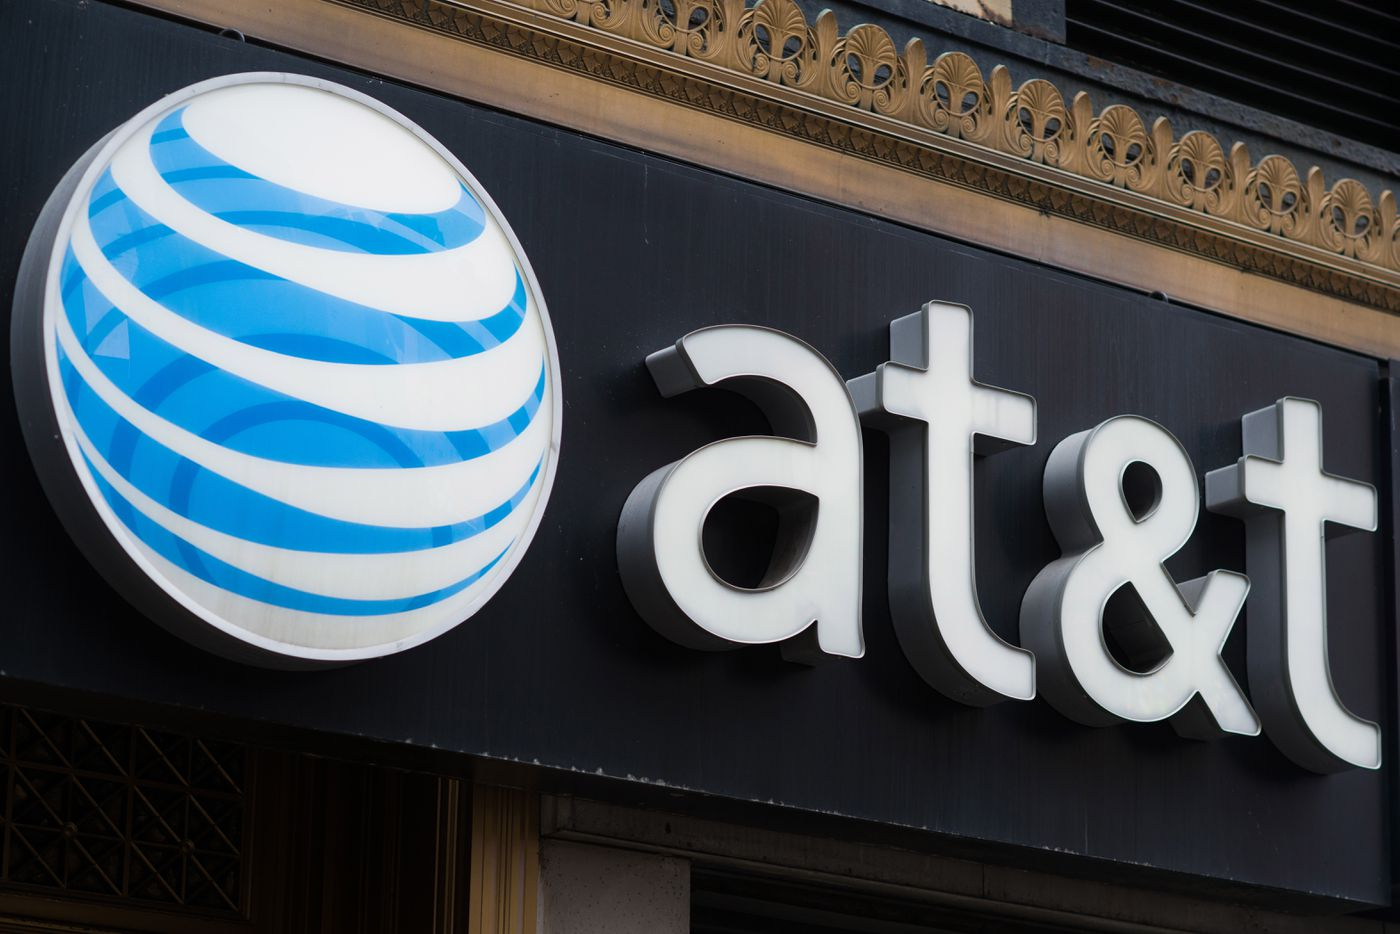 AT&T appeal seen as high-stakes shot at redemption for enforcers